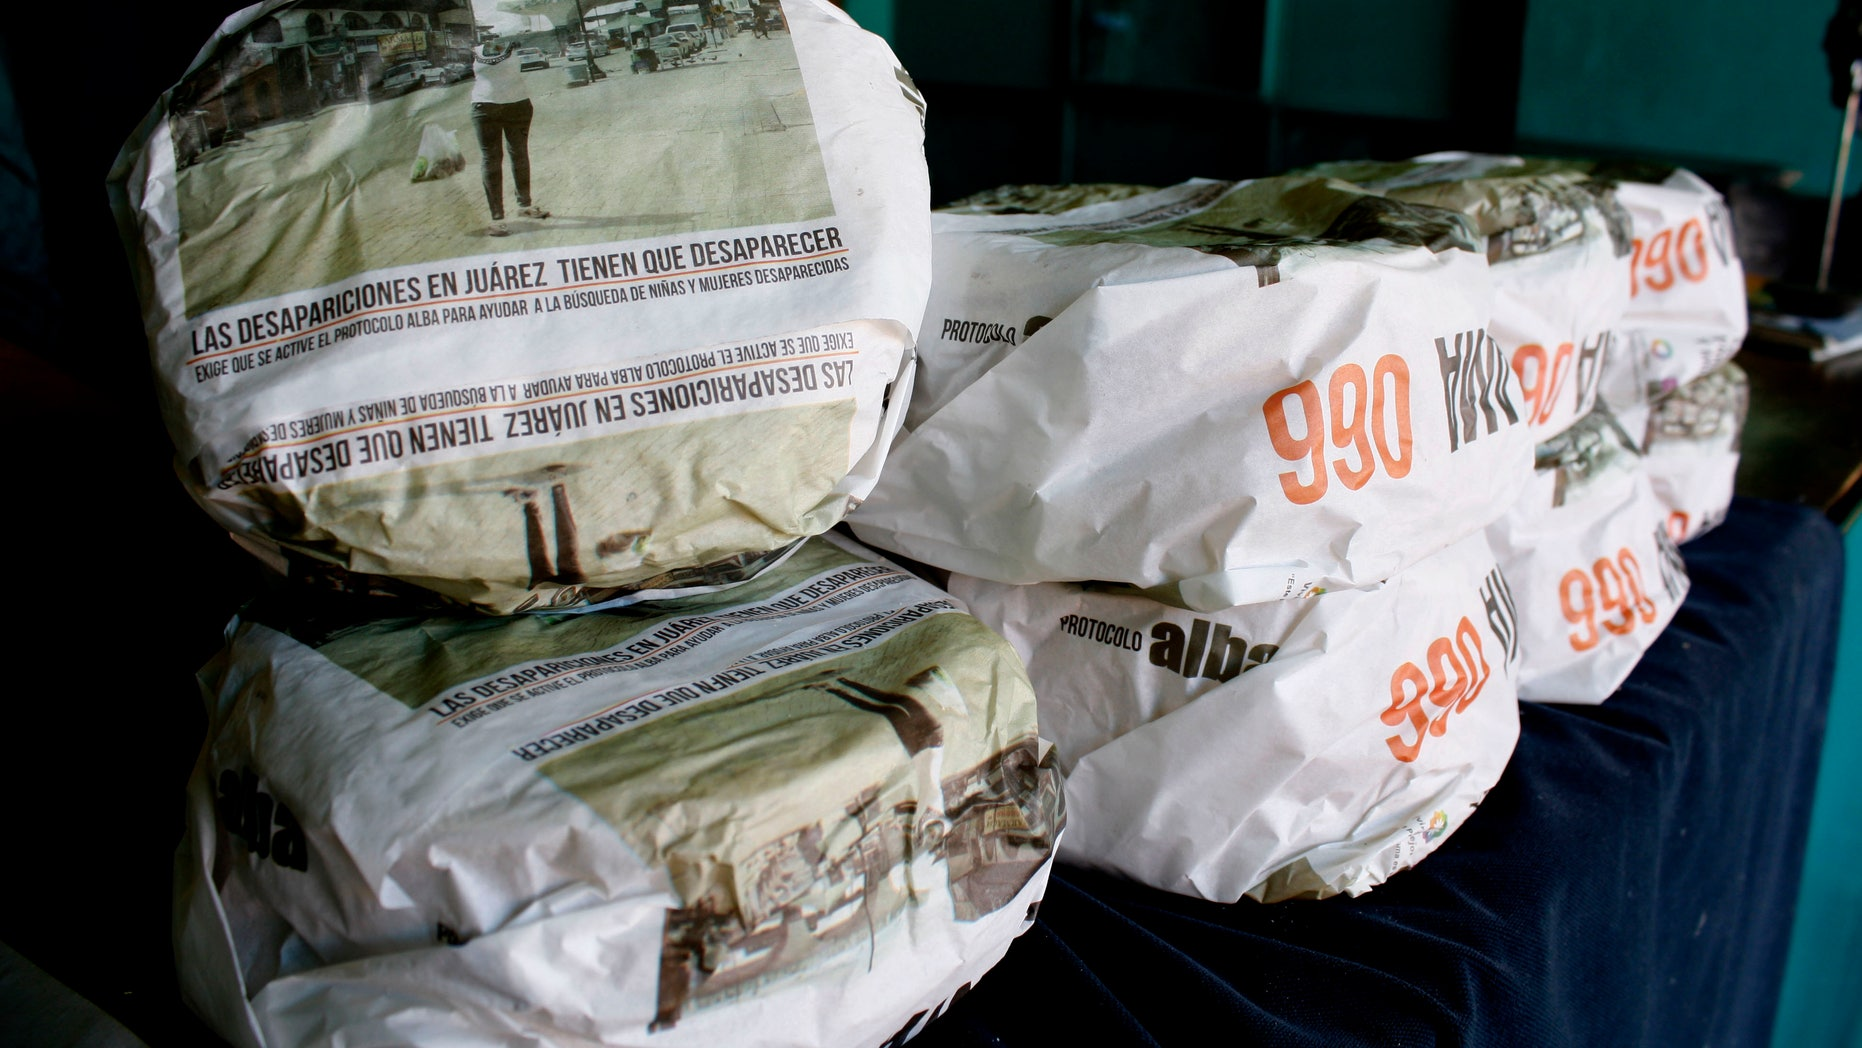 One kilogram packages of corn tortillas, packaged with advertisements asking for help to find missing women and children, sit for sale at the Hermanos Escobar Tortilla shop in the northern border city of Ciudad Juarez, Mexico.